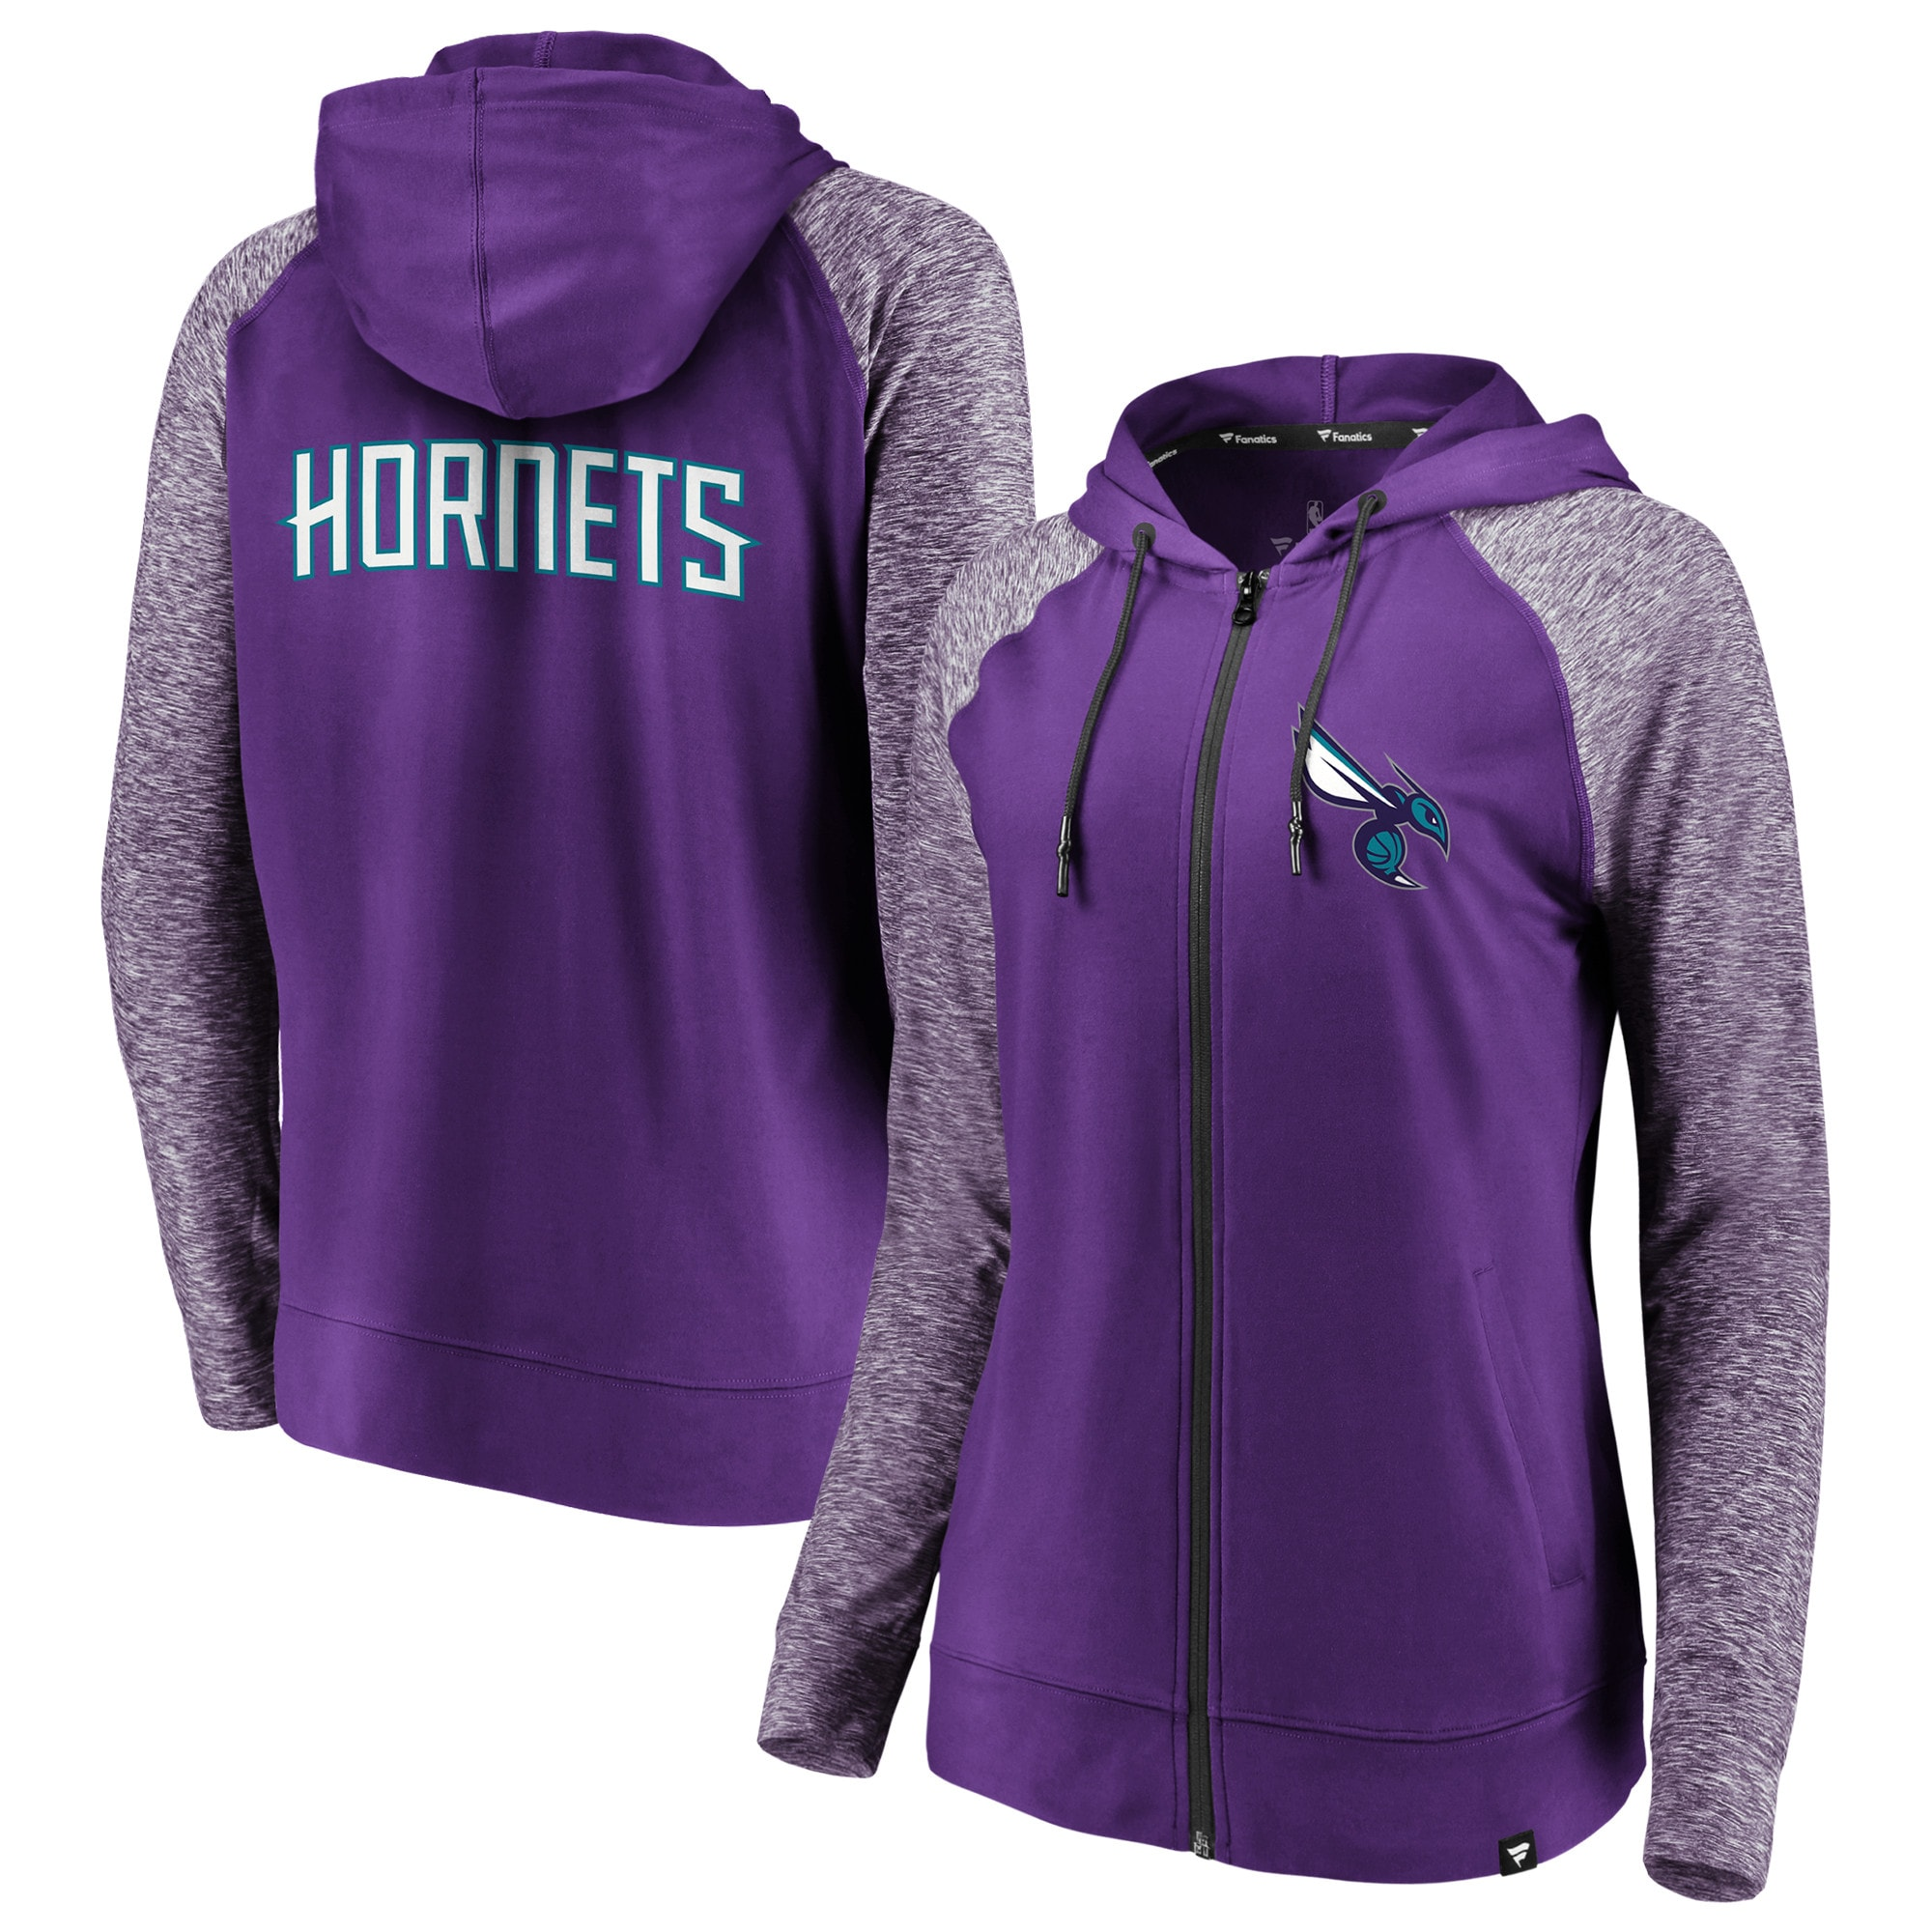 Charlotte Hornets Fanatics Branded Women's Made to Move Static Raglan Performance Full-Zip Hoodie - Purple/Heathered Purple